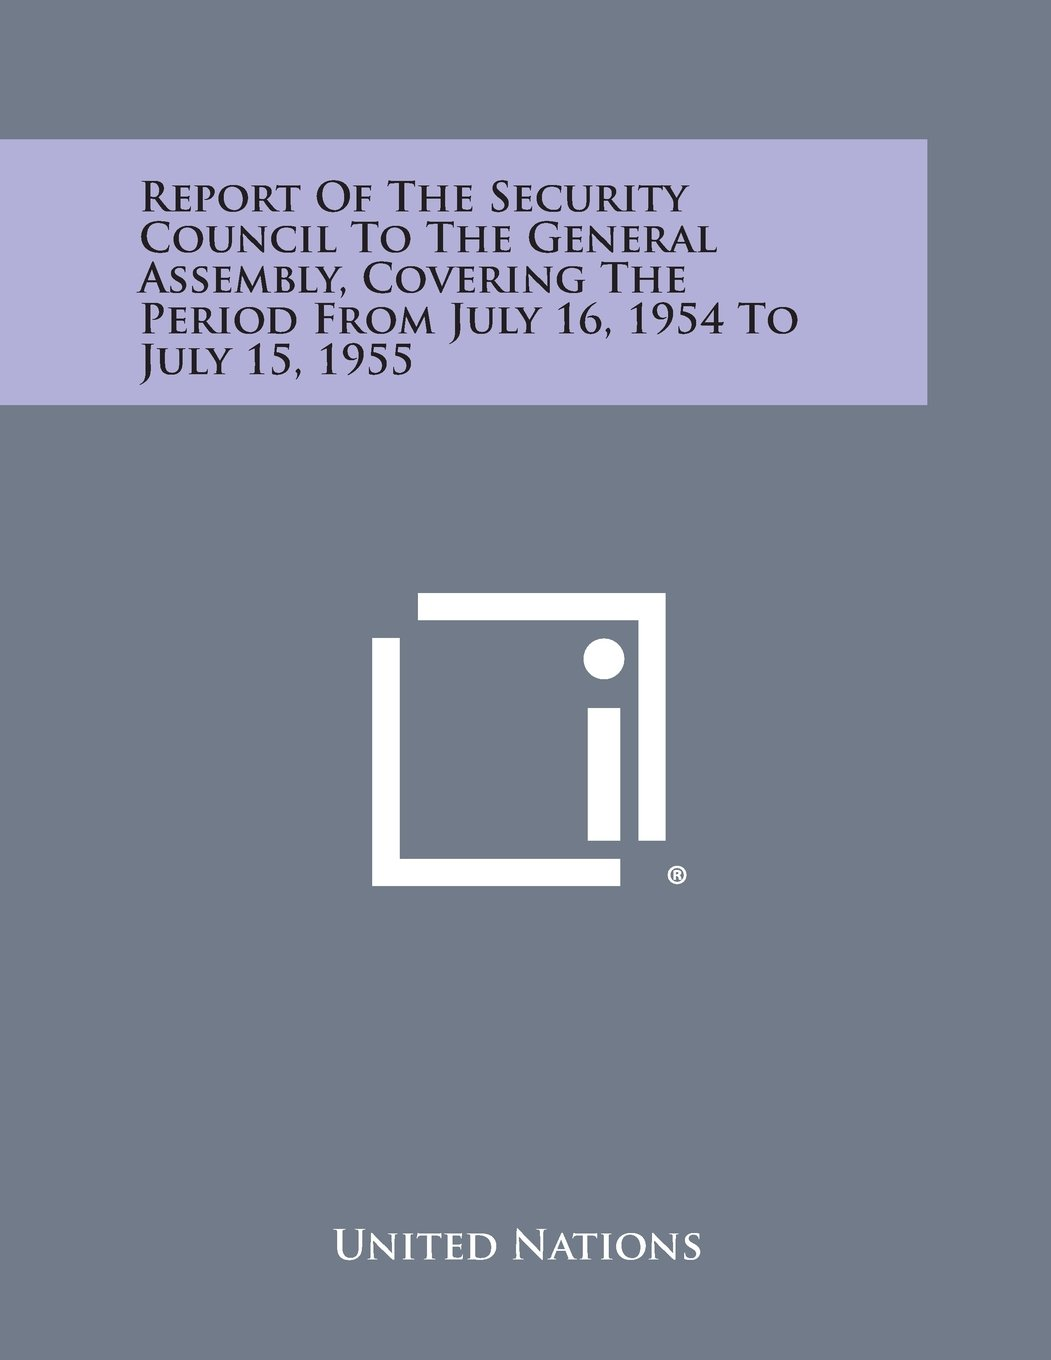 Download Report of the Security Council to the General Assembly, Covering the Period from July 16, 1954 to July 15, 1955 pdf